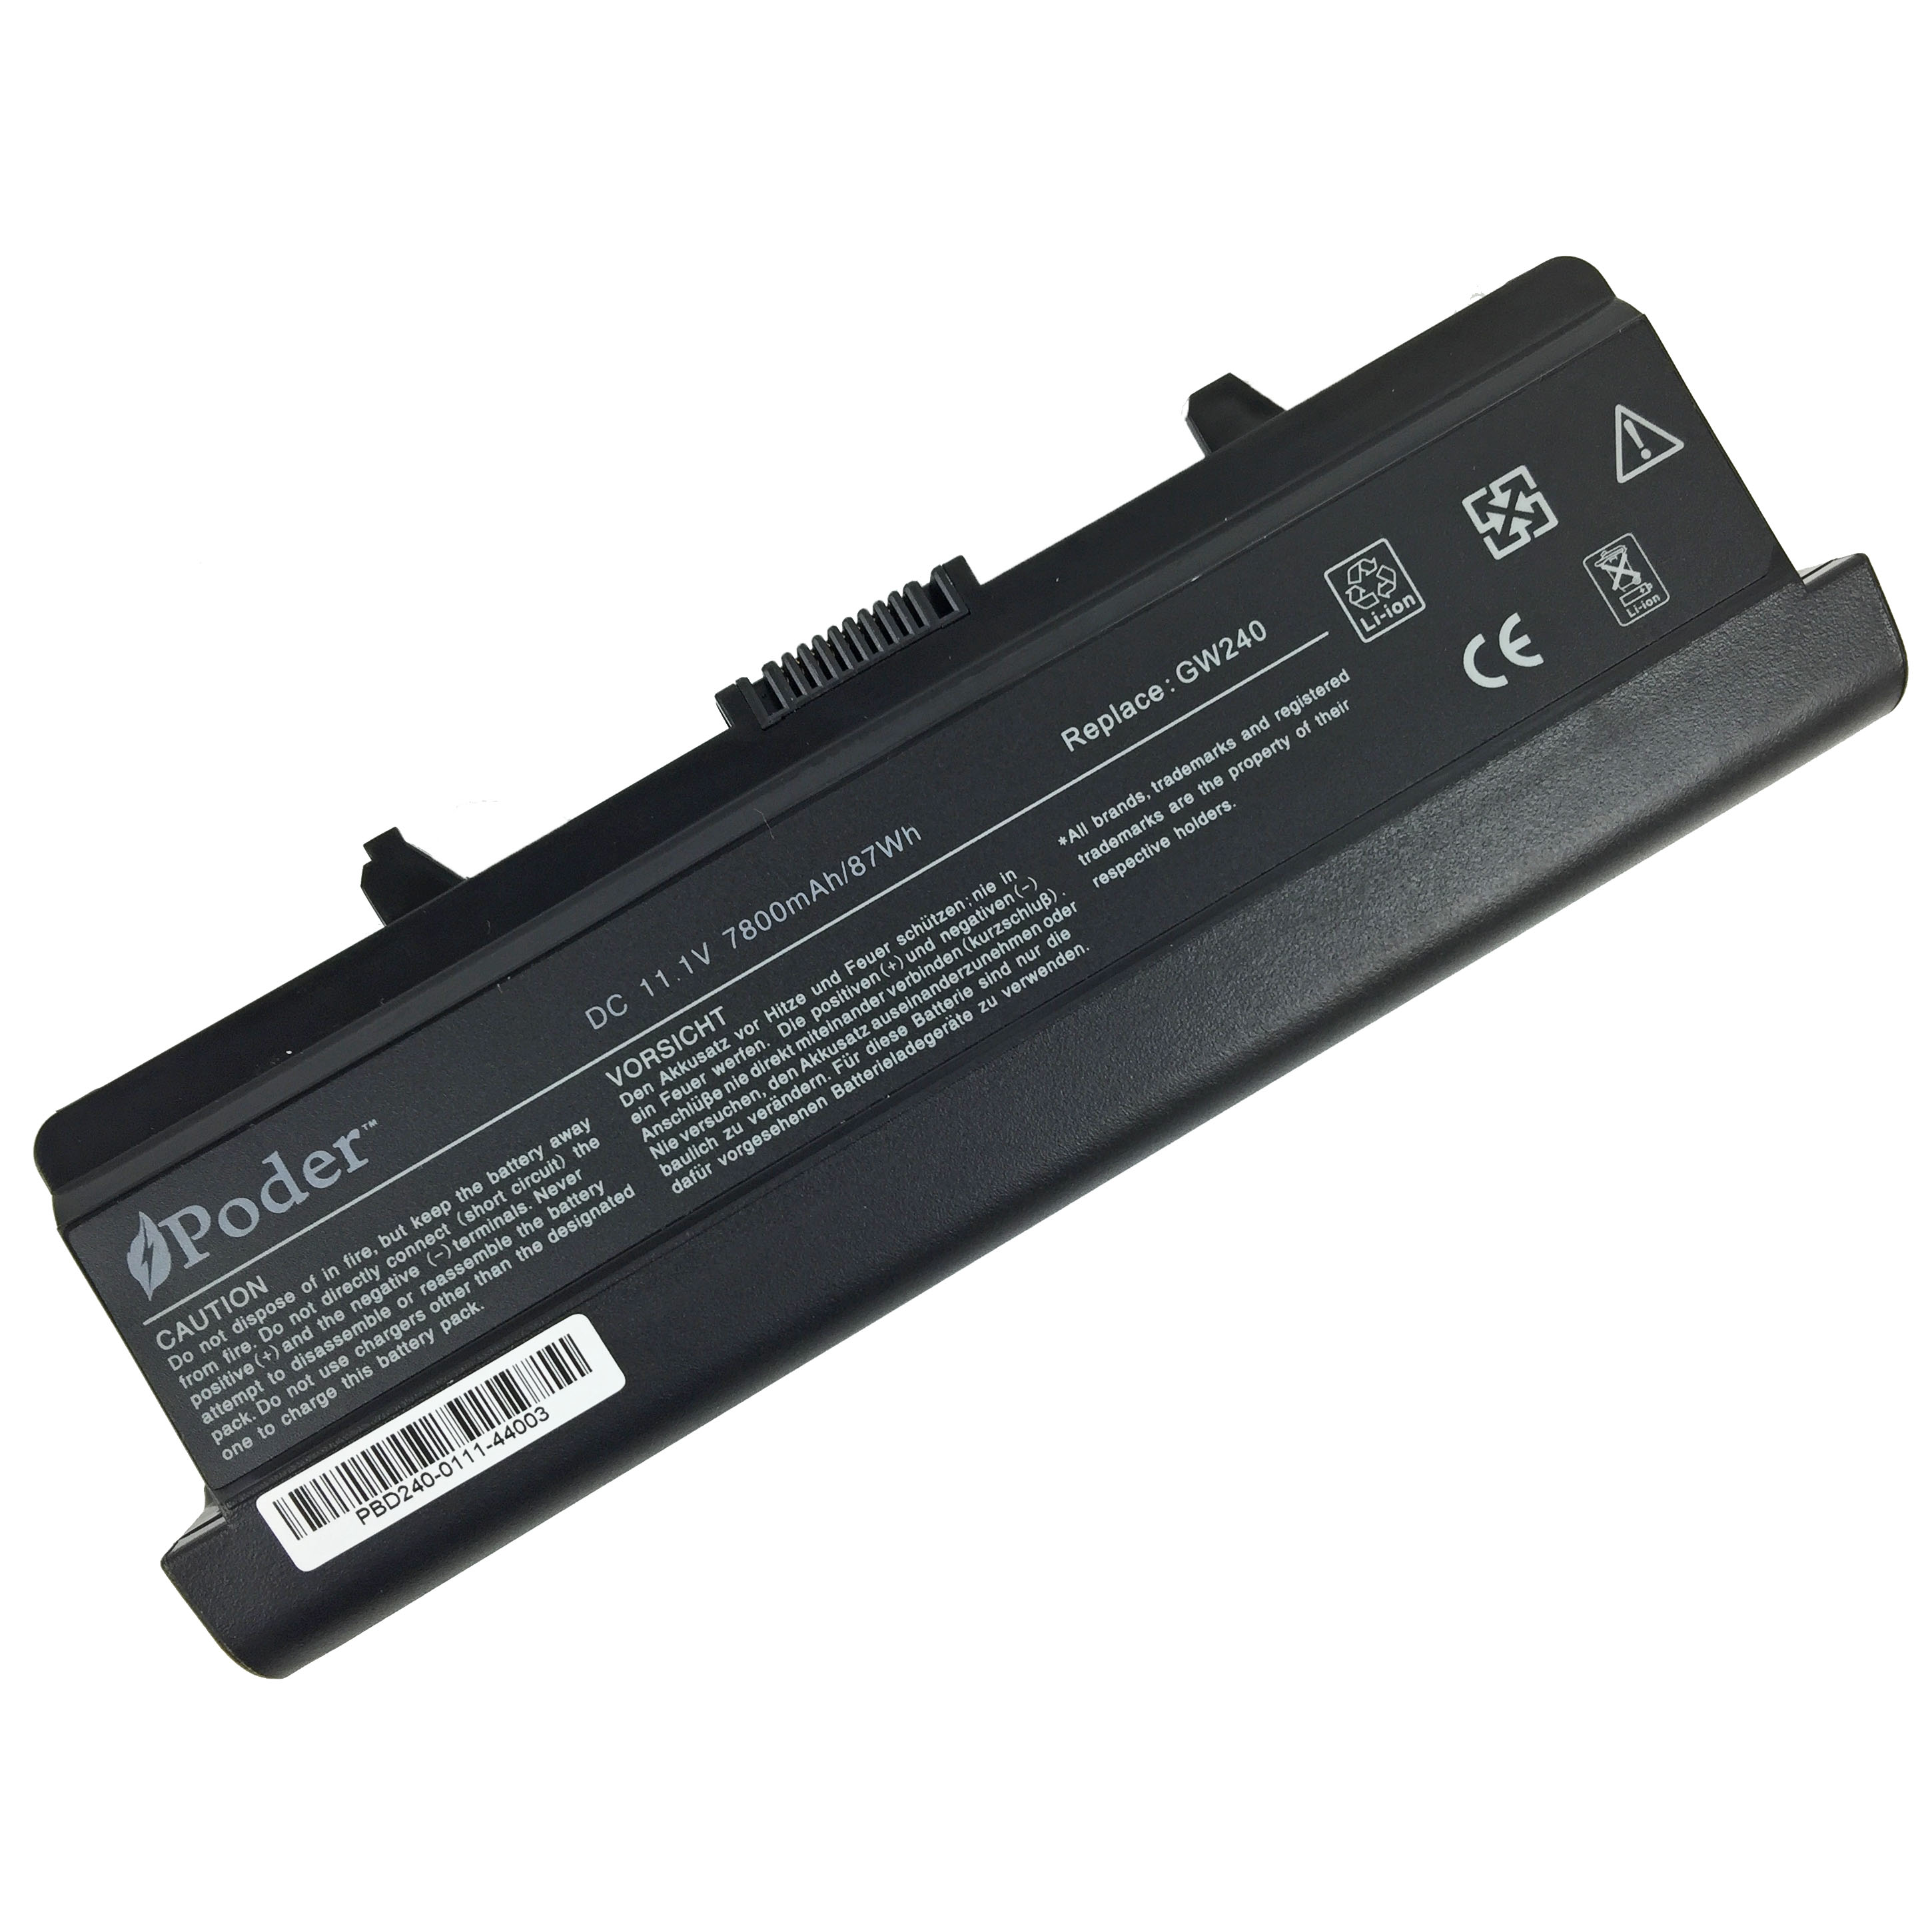 New Poder Premium High Quality 9 Cell Replacement Battery for Dell Inspiron 15 1525 1526 1545 1546 11.1V 7800mAh 87Wh